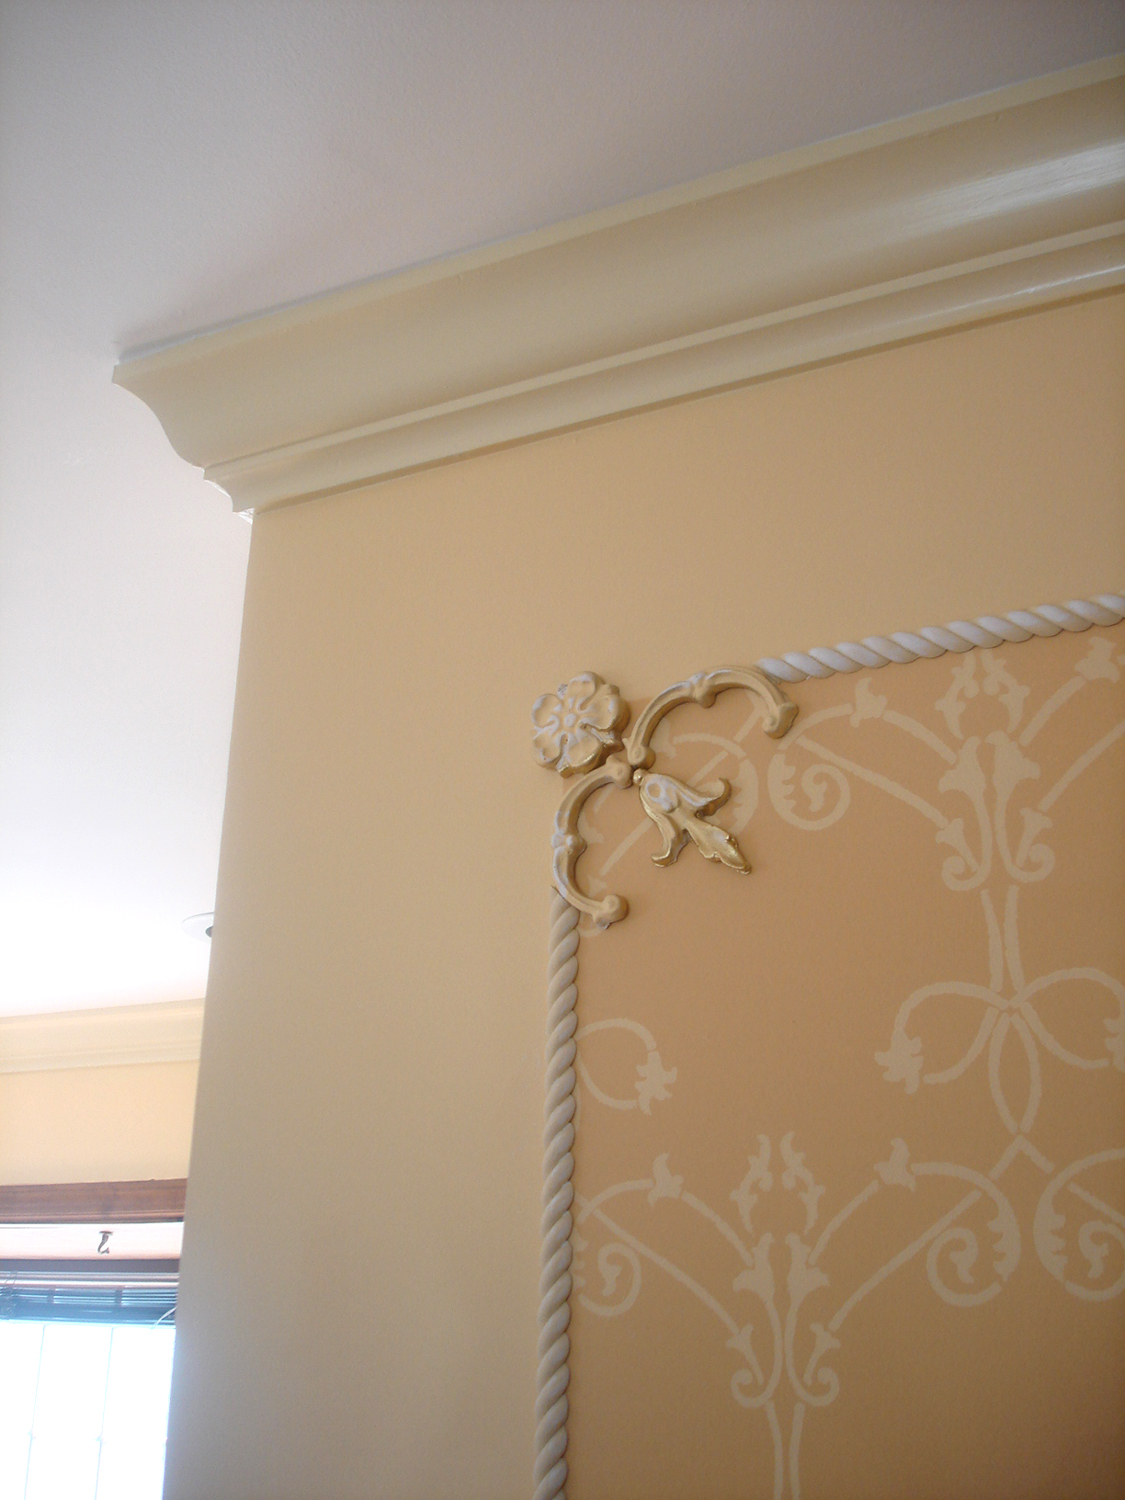 decorative-painting-stenceling-custom-millwork-crown-moulding-dots-of-arts.jpg